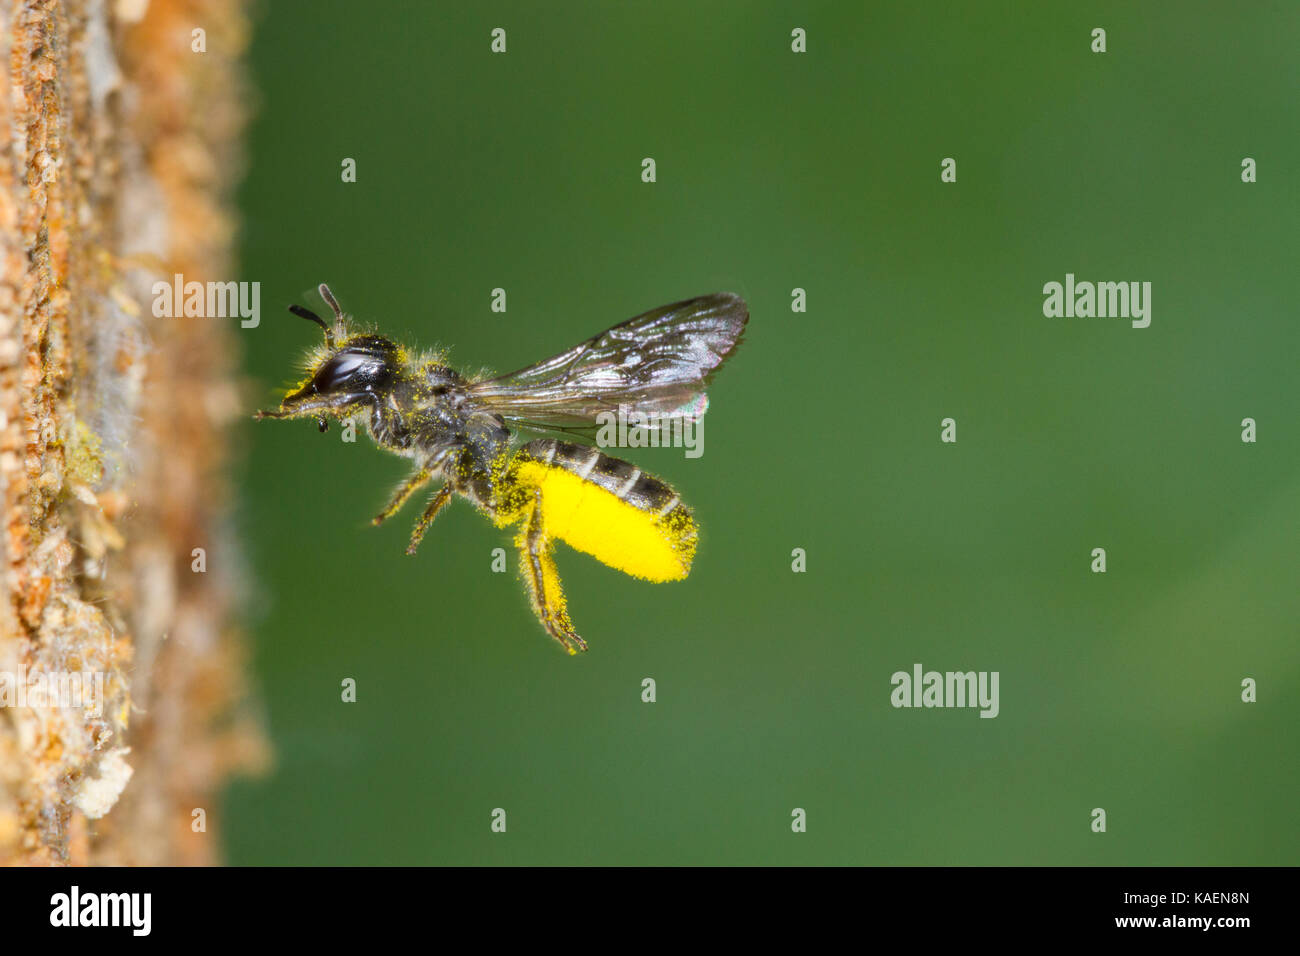 Large Scissor-bee (Chelostoma florisomne) in flight at entrance of nest hole with a load of pollen. Powys, Wales. - Stock Image